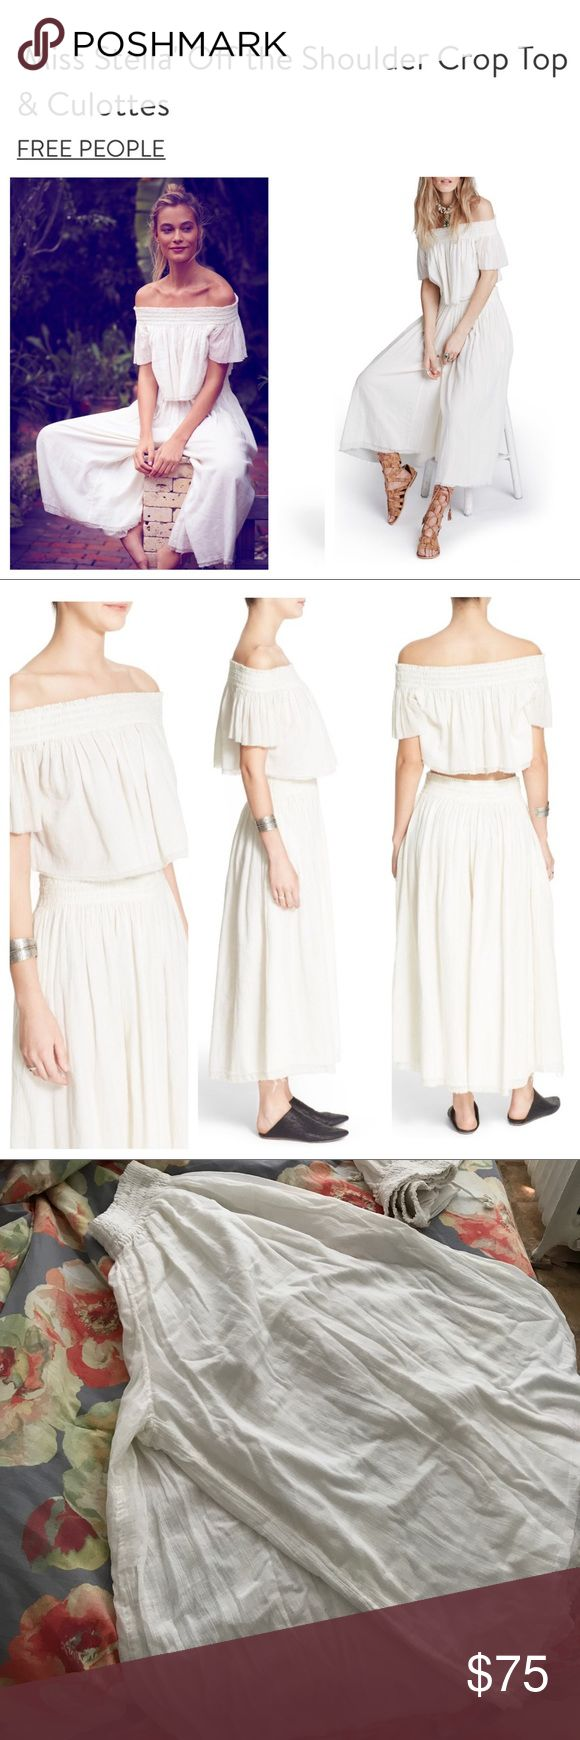 FREE PEOPLE-Miss Stella Off the Shoulder&Culottes It's a white linen like set. It's 100% Cotton. The style is very light weight with unfinished hems. Off the shoulders crop top and the pants are wide leg culottes. Very Comfortable. Great for summer outings. Never worn. Was meant for maternity pictures but never happened. It's see-thru and has pockets. You can find it in 2 other colors on Free People website. The reviews says it runs large so this medium set will fit if you're a large. PRICE…